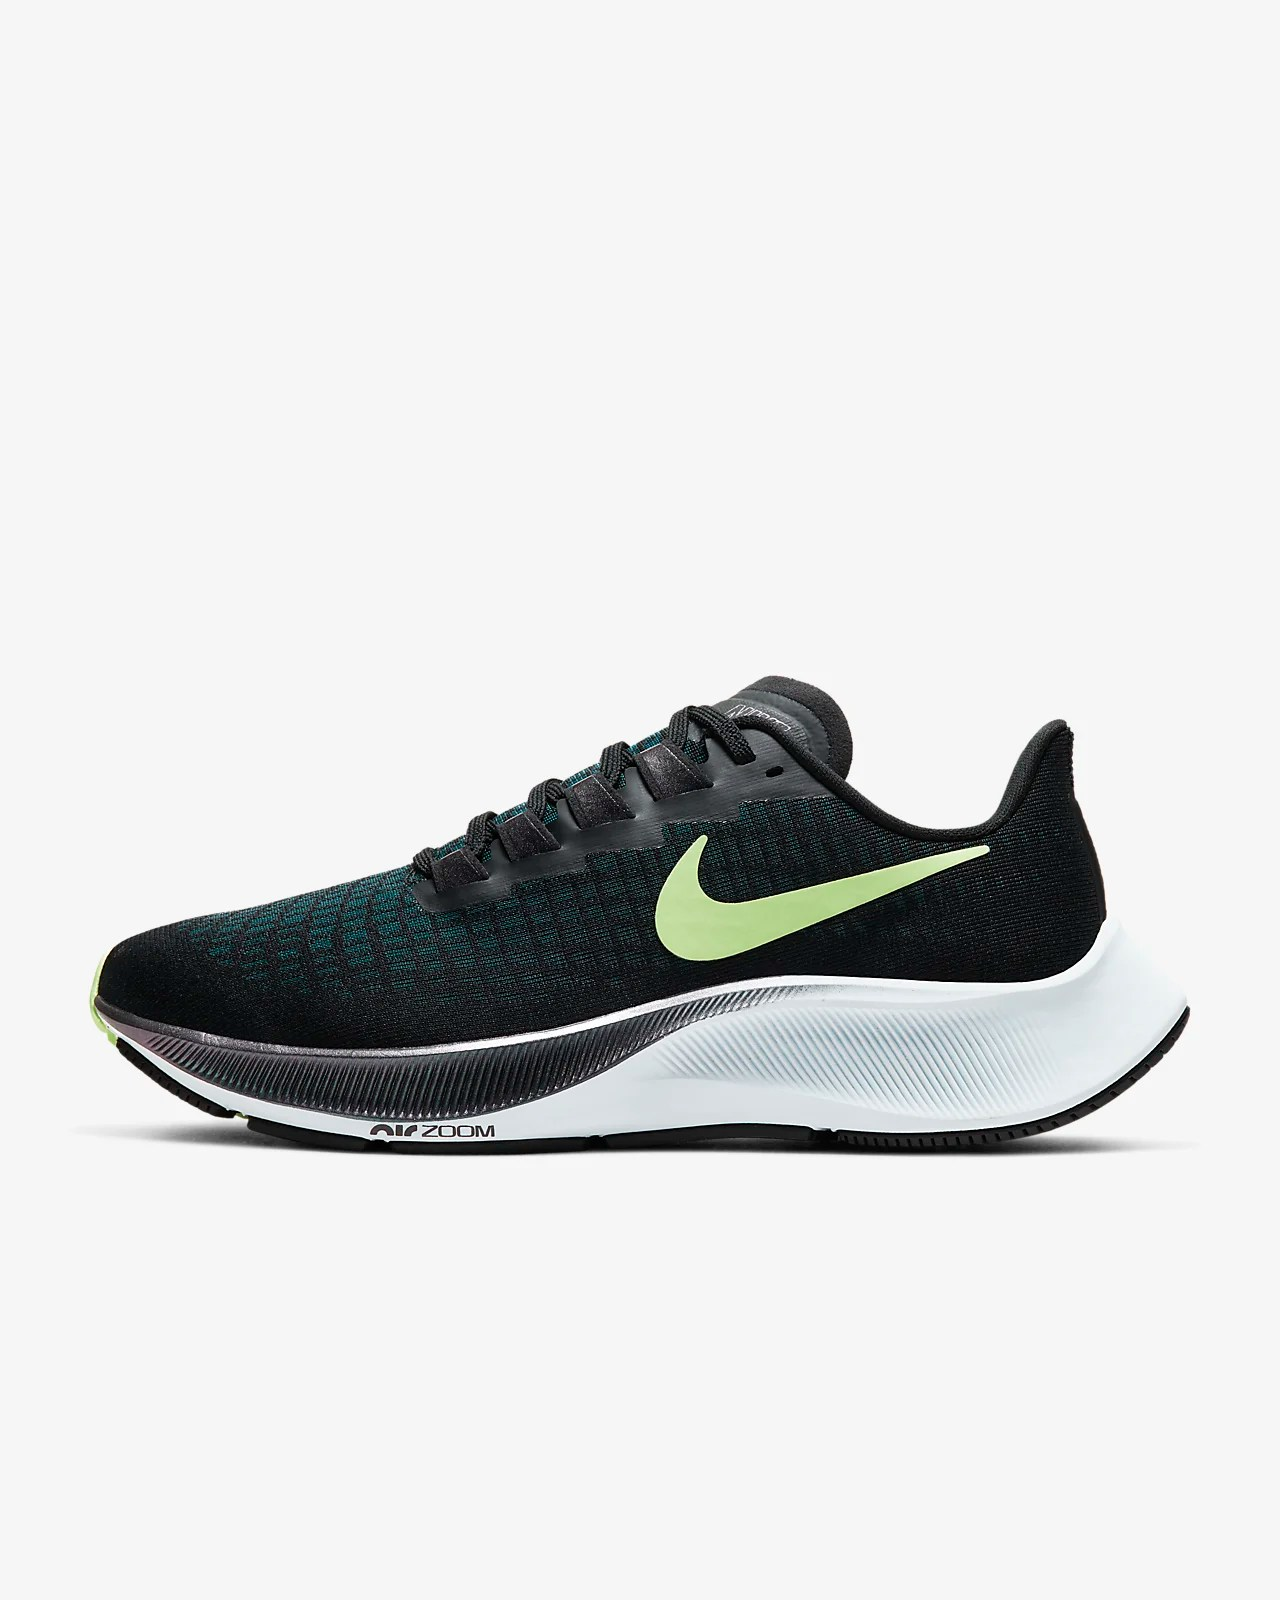 Nike Air Zoom Pegasus 37 女款跑鞋. Nike TW